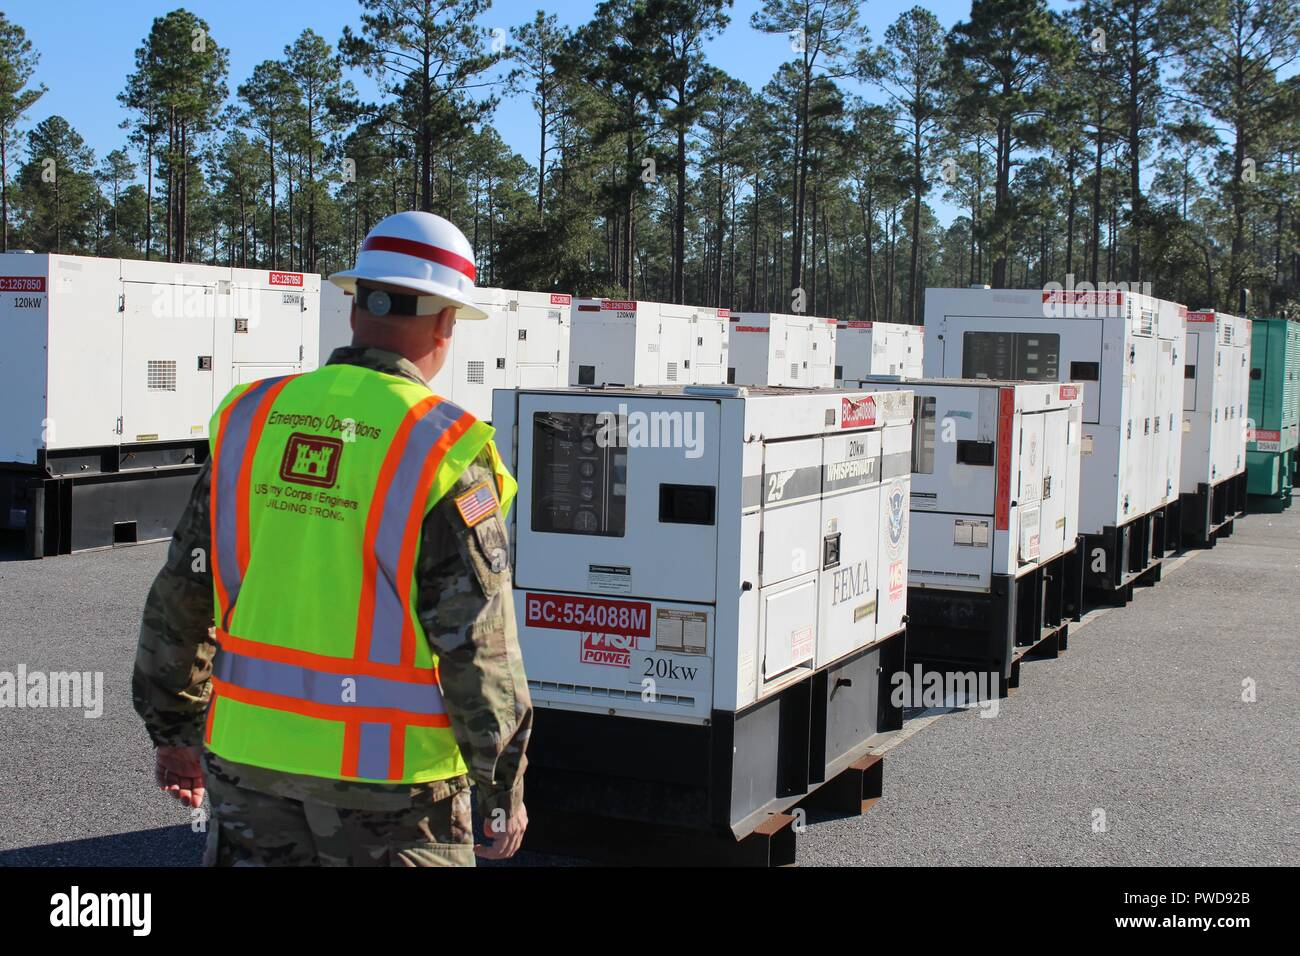 USACE has received 7 FEMA Mission Assignments (7 active, 6 closed), totaling more than $10.5 million for disaster response to Hurricane Michael-damaged areas, October 13, 2018. One of those missions is to provide Temporary Emergency Power. The USACE Temporary Power PRT and the 249th Engineer Battalion are deployed and assessing sites for installation of emergency generators. Sergeant First Class Robert Fox, 249th Engineer Battalion, C Company out of Fort Belvoir, Virginia, inspects a generator upon delivery to the Incident Support Base in Albany, Ga. (U.S. Army photo by Chris Gardner). () - Stock Image